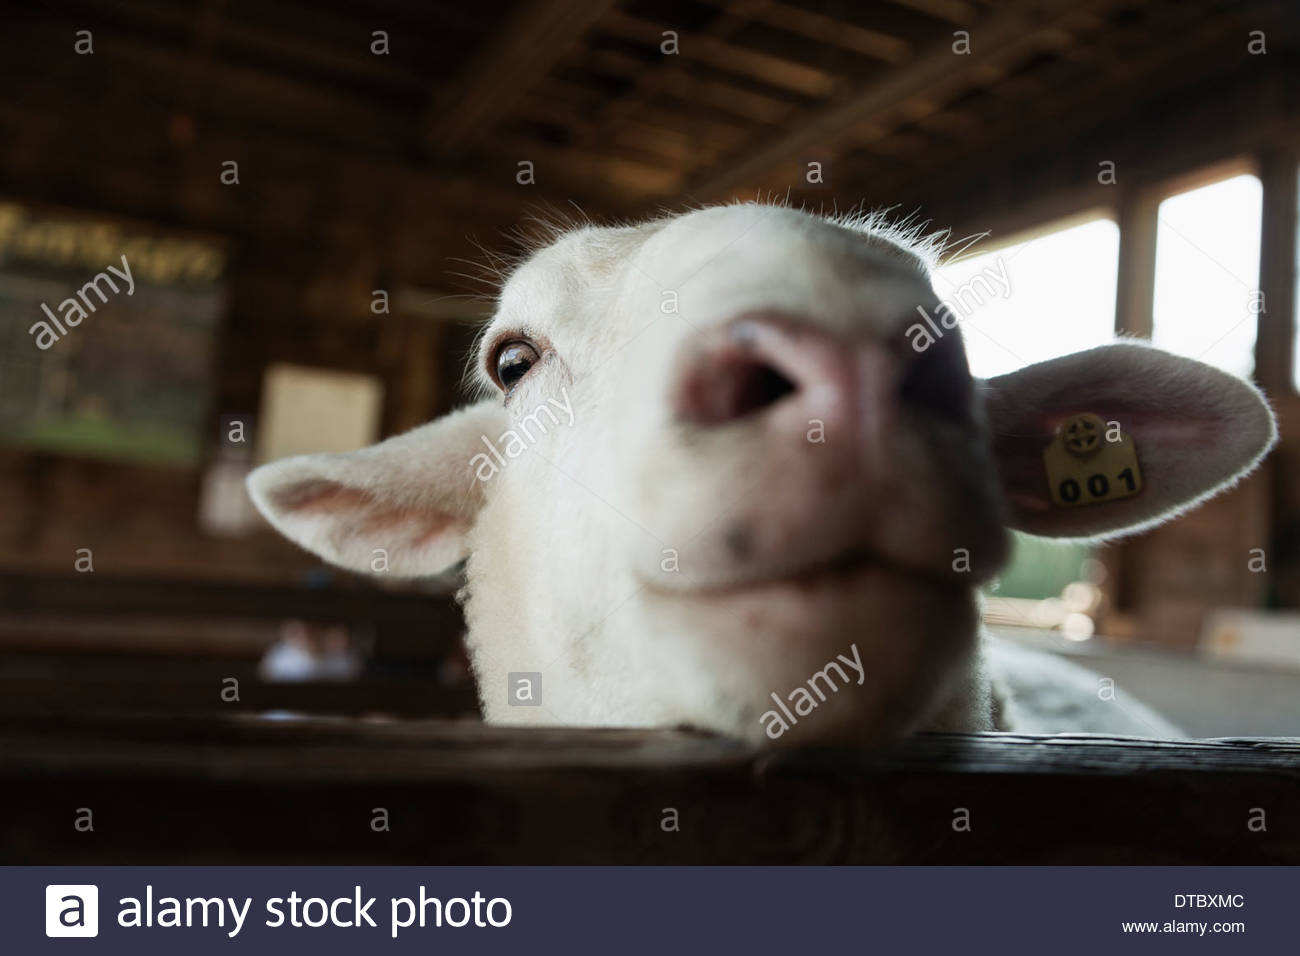 Goat in pen being inquisitive - Stock Image